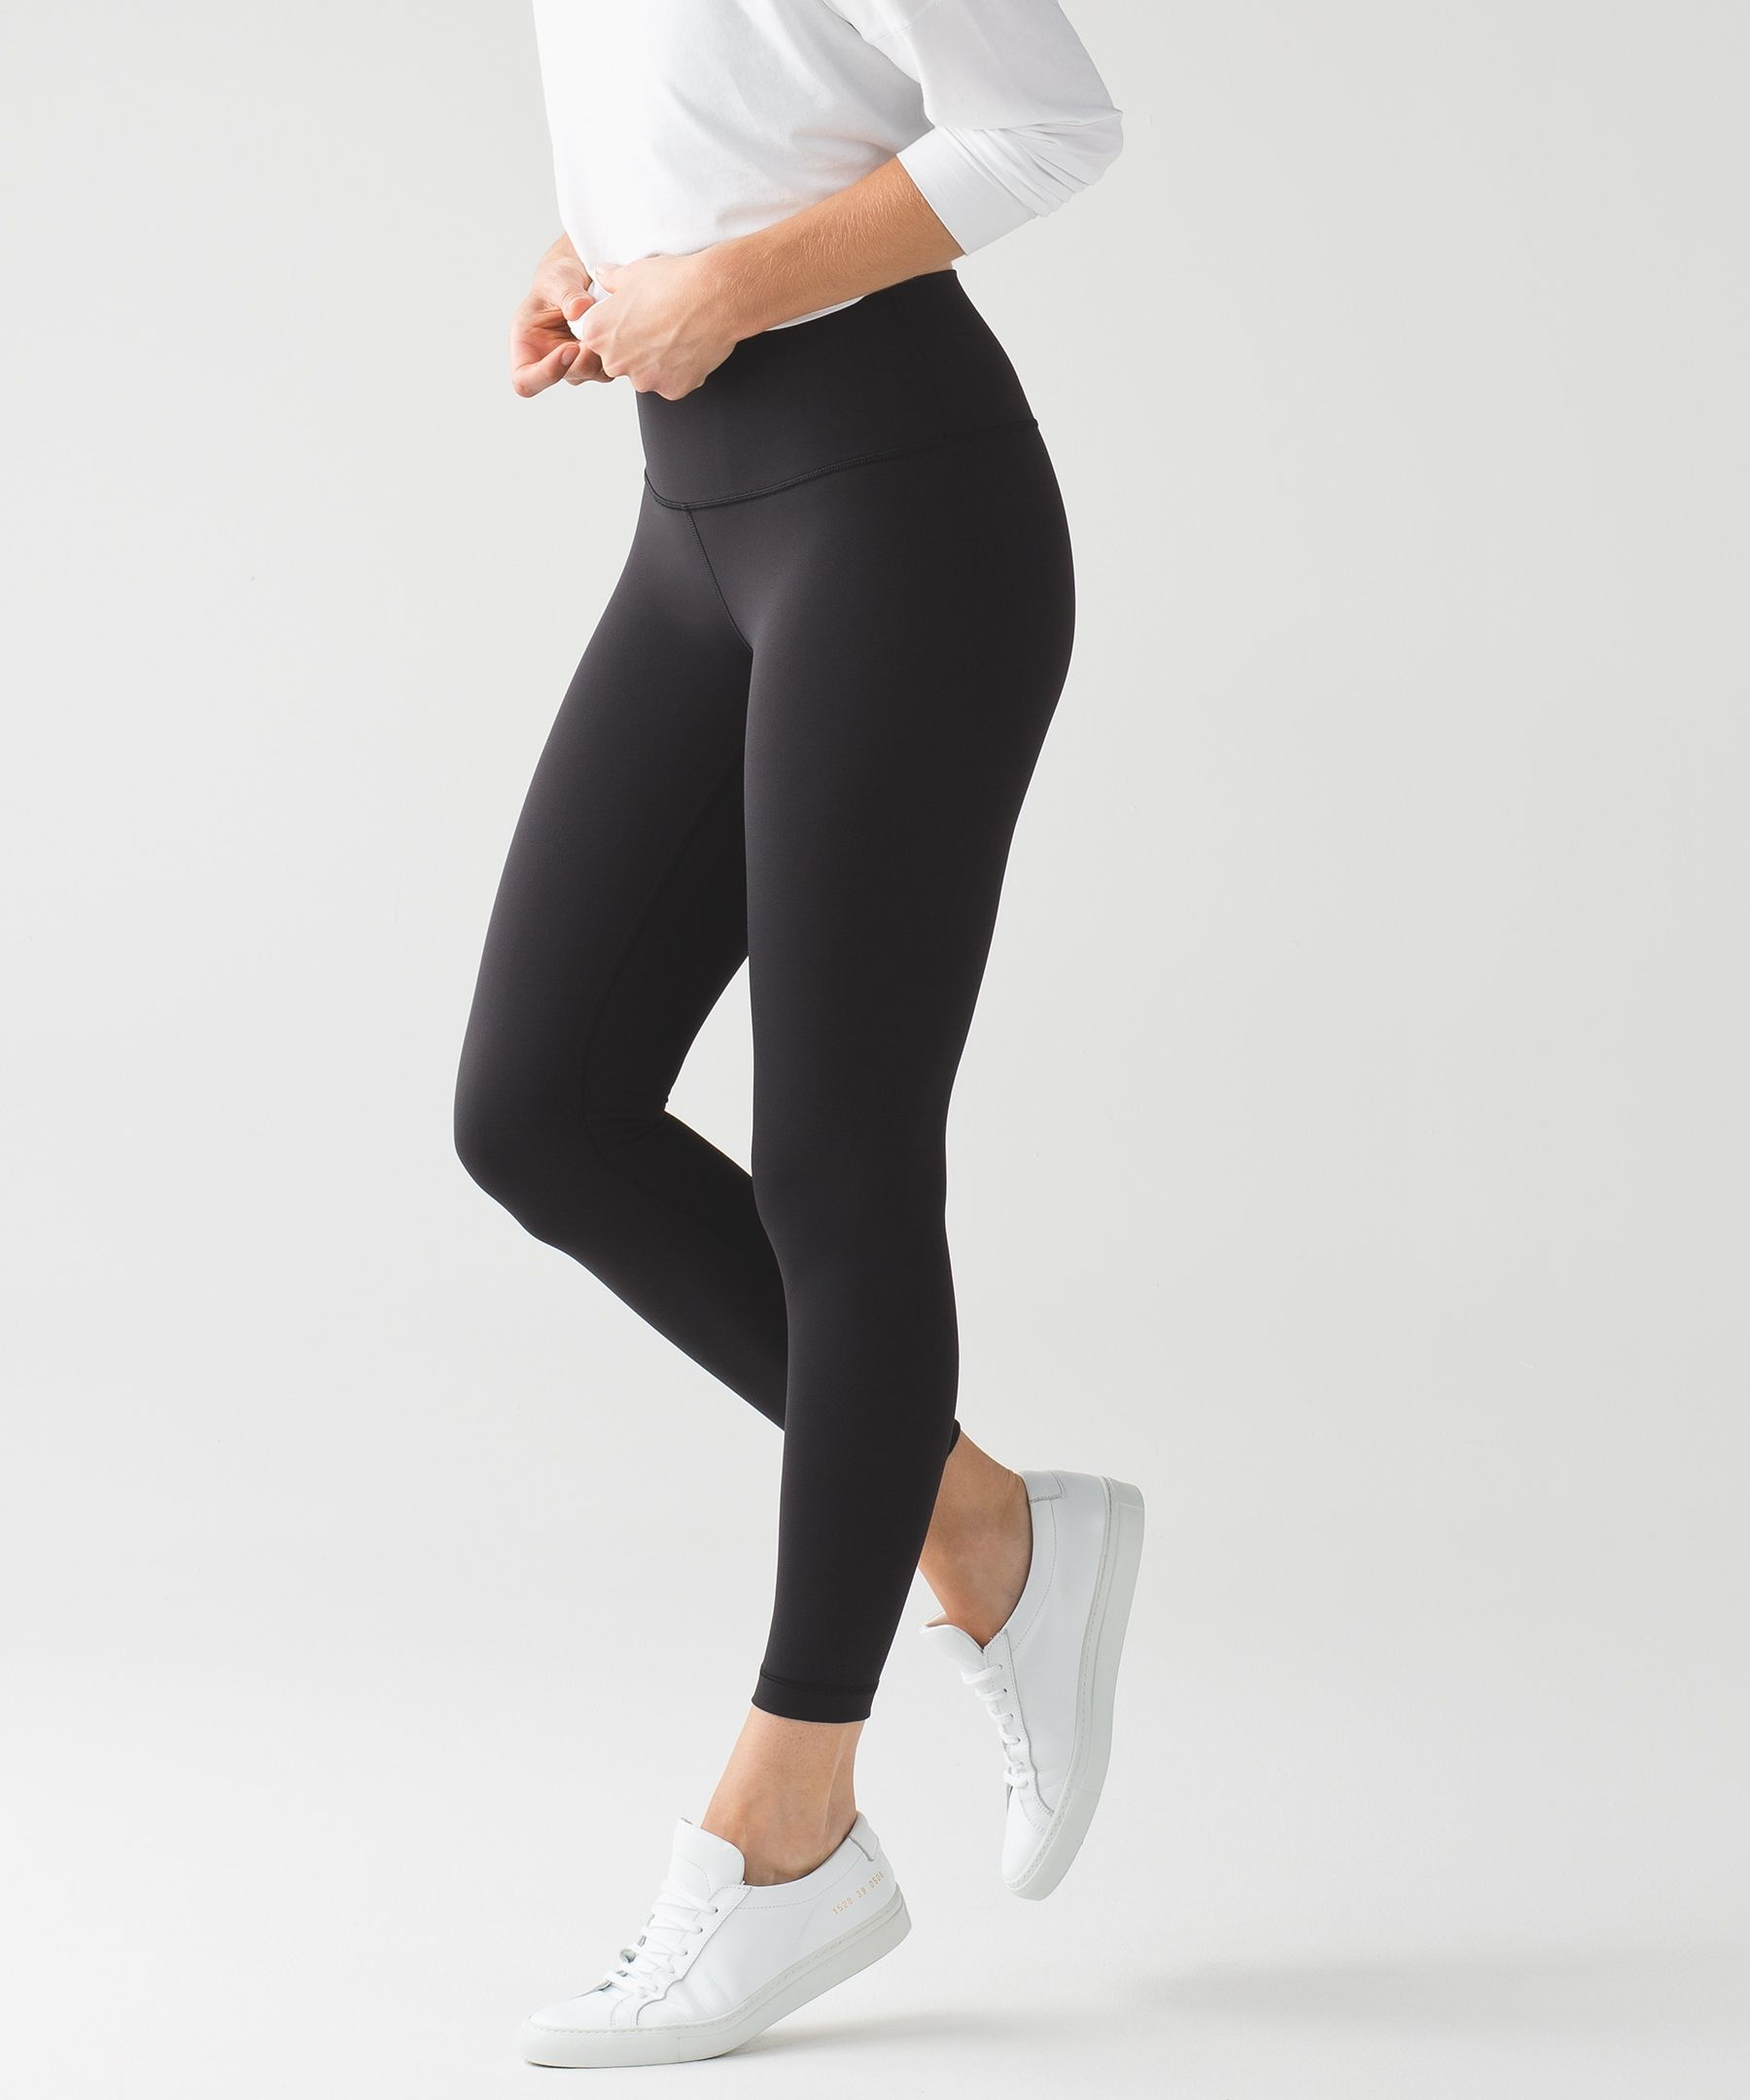 dd54ea46d04fd5 High Times Pant *Full-On Luxtreme | Women's Yoga Pants | lululemon  athletica | @giftryapp